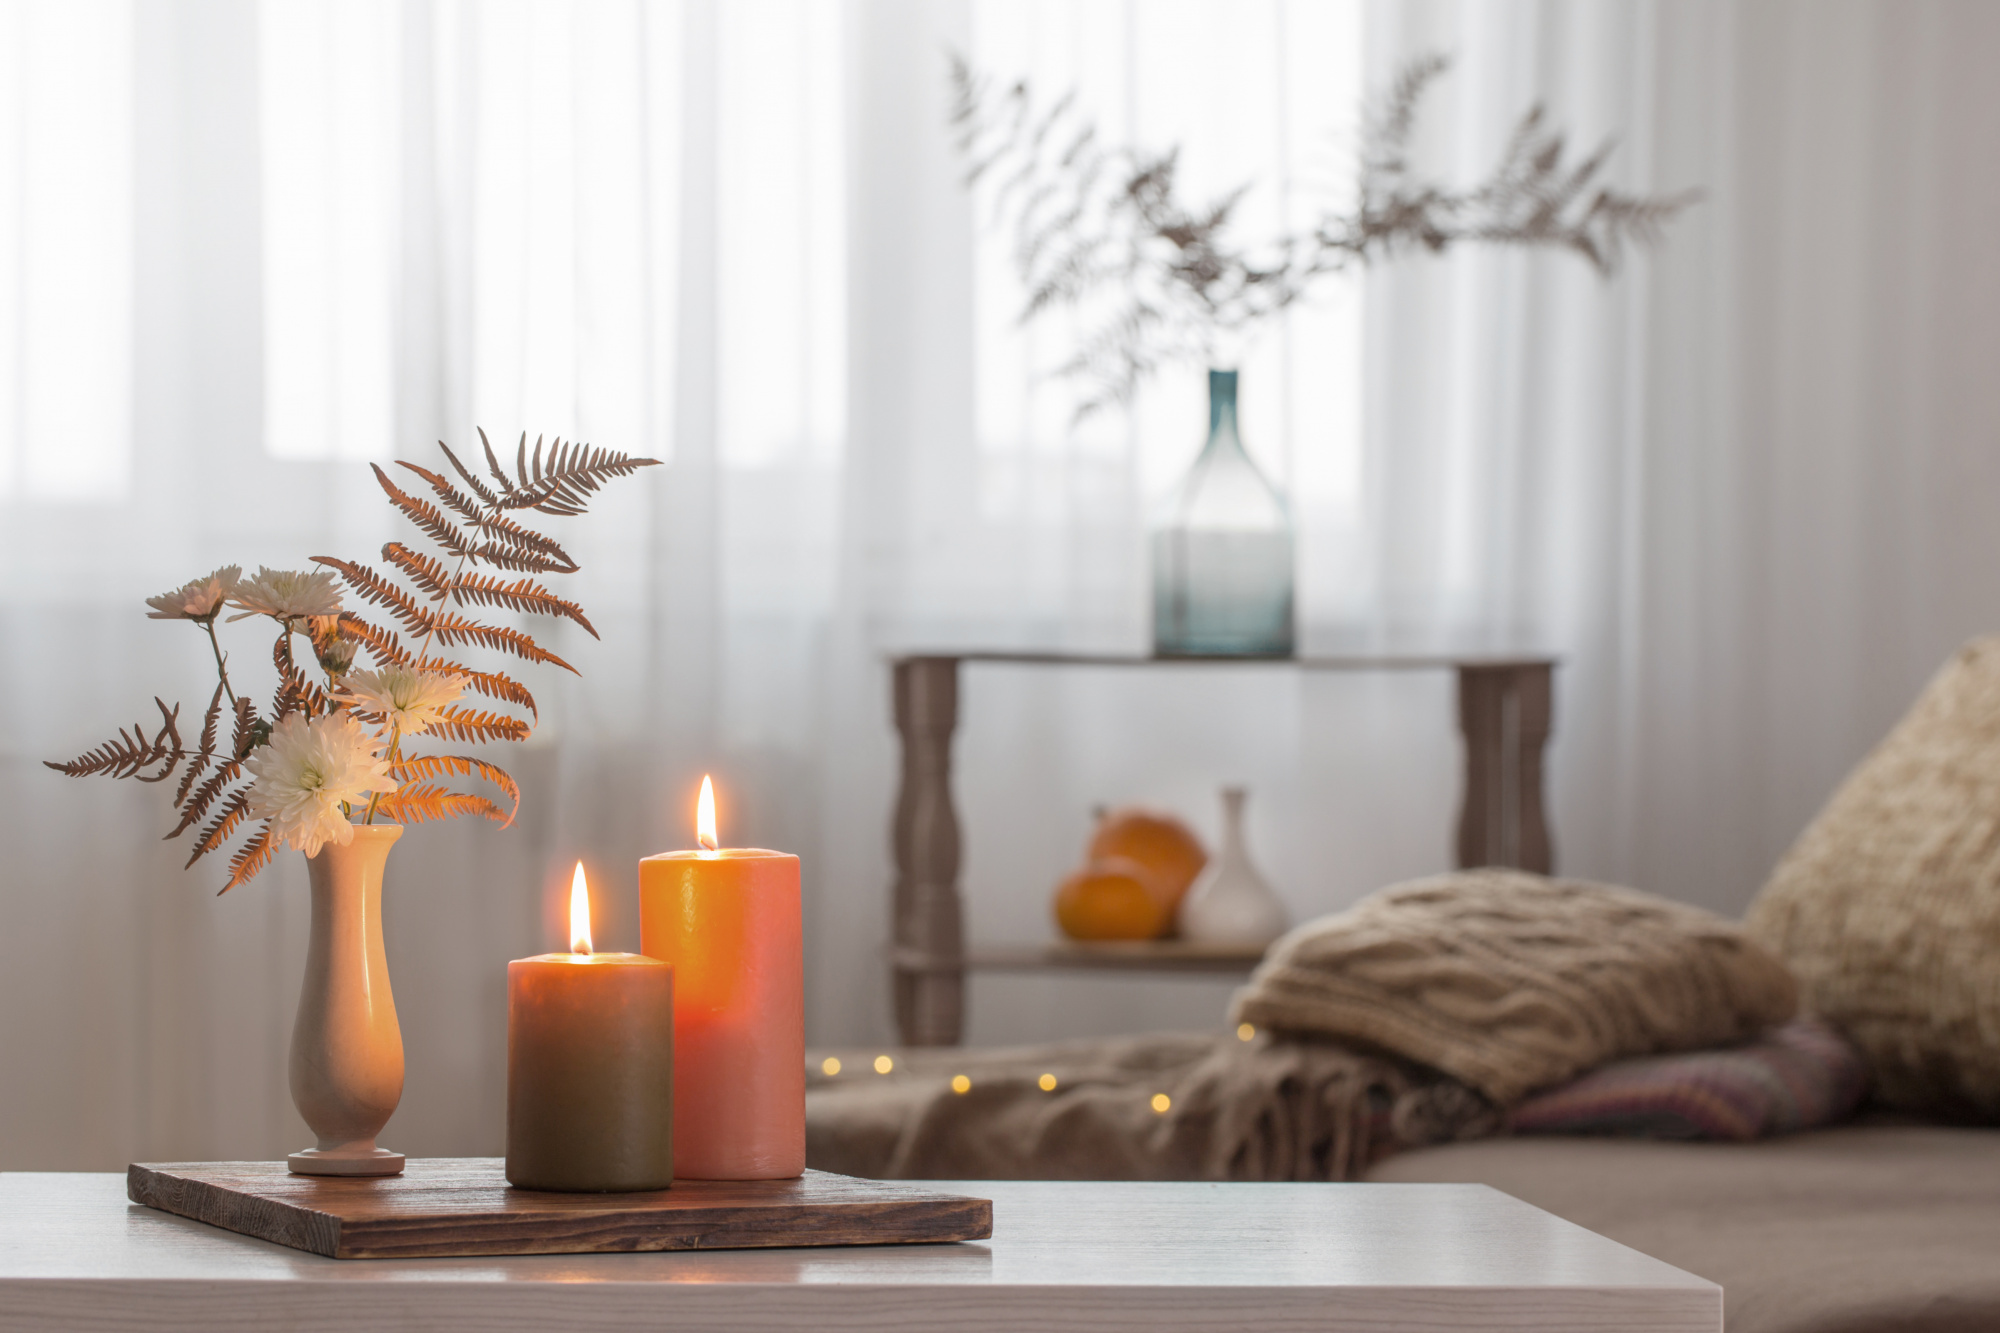 fall home décor how to decorate for fall with a neutral color palette, fall neutral colors, fall neutral color palette, neutral home decor, neutral fall decor